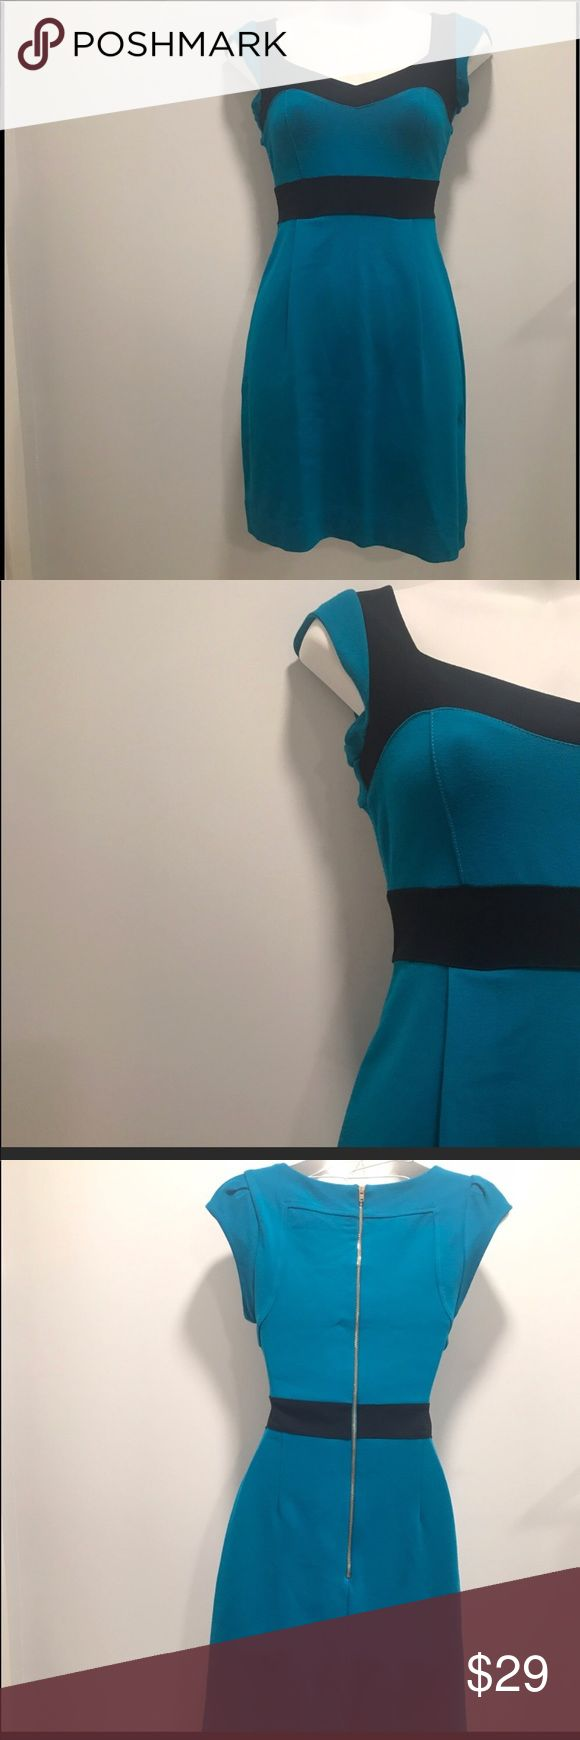 French connection bandage dress-4 This sleek and sophisticated dress is great for parties or other formal events. The fit is ideal and the colors pop. Classy and sassy! French Connection Dresses Mini